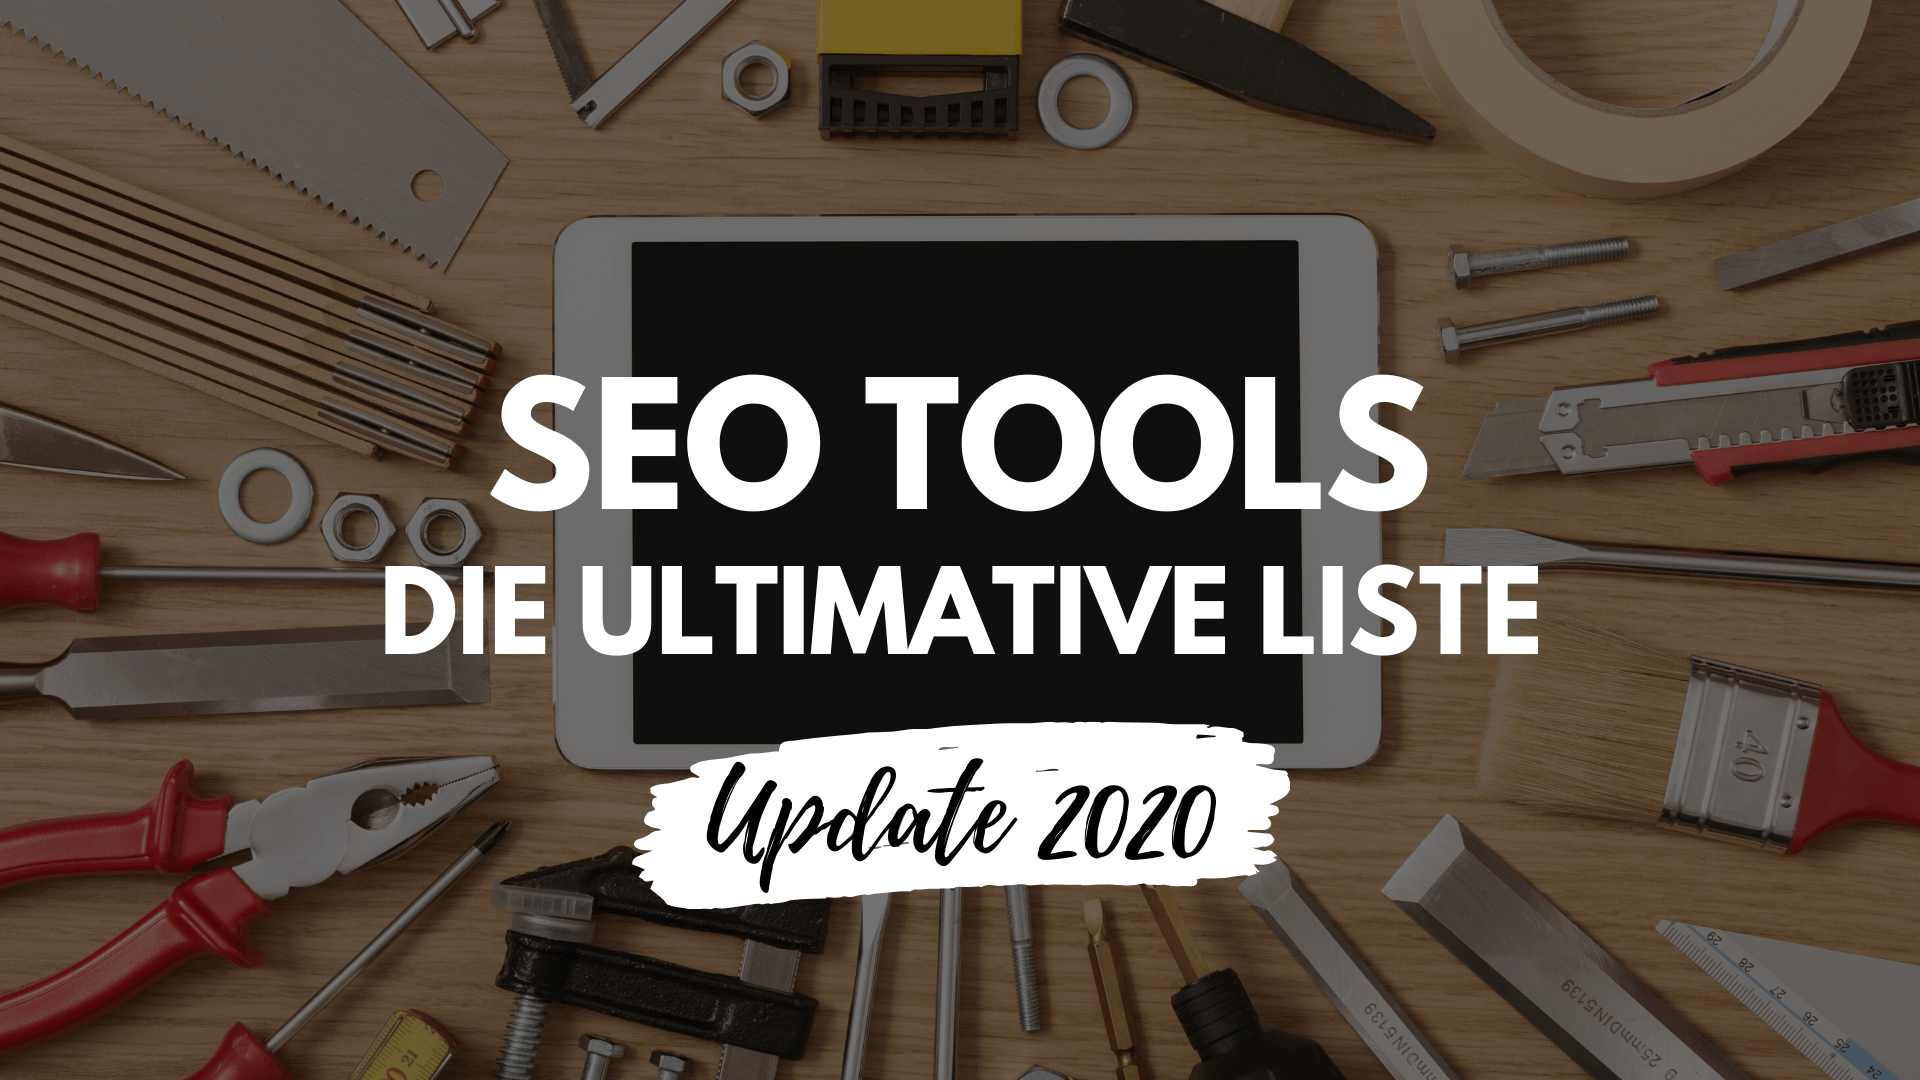 SEO Tools - Die Ultimative Liste